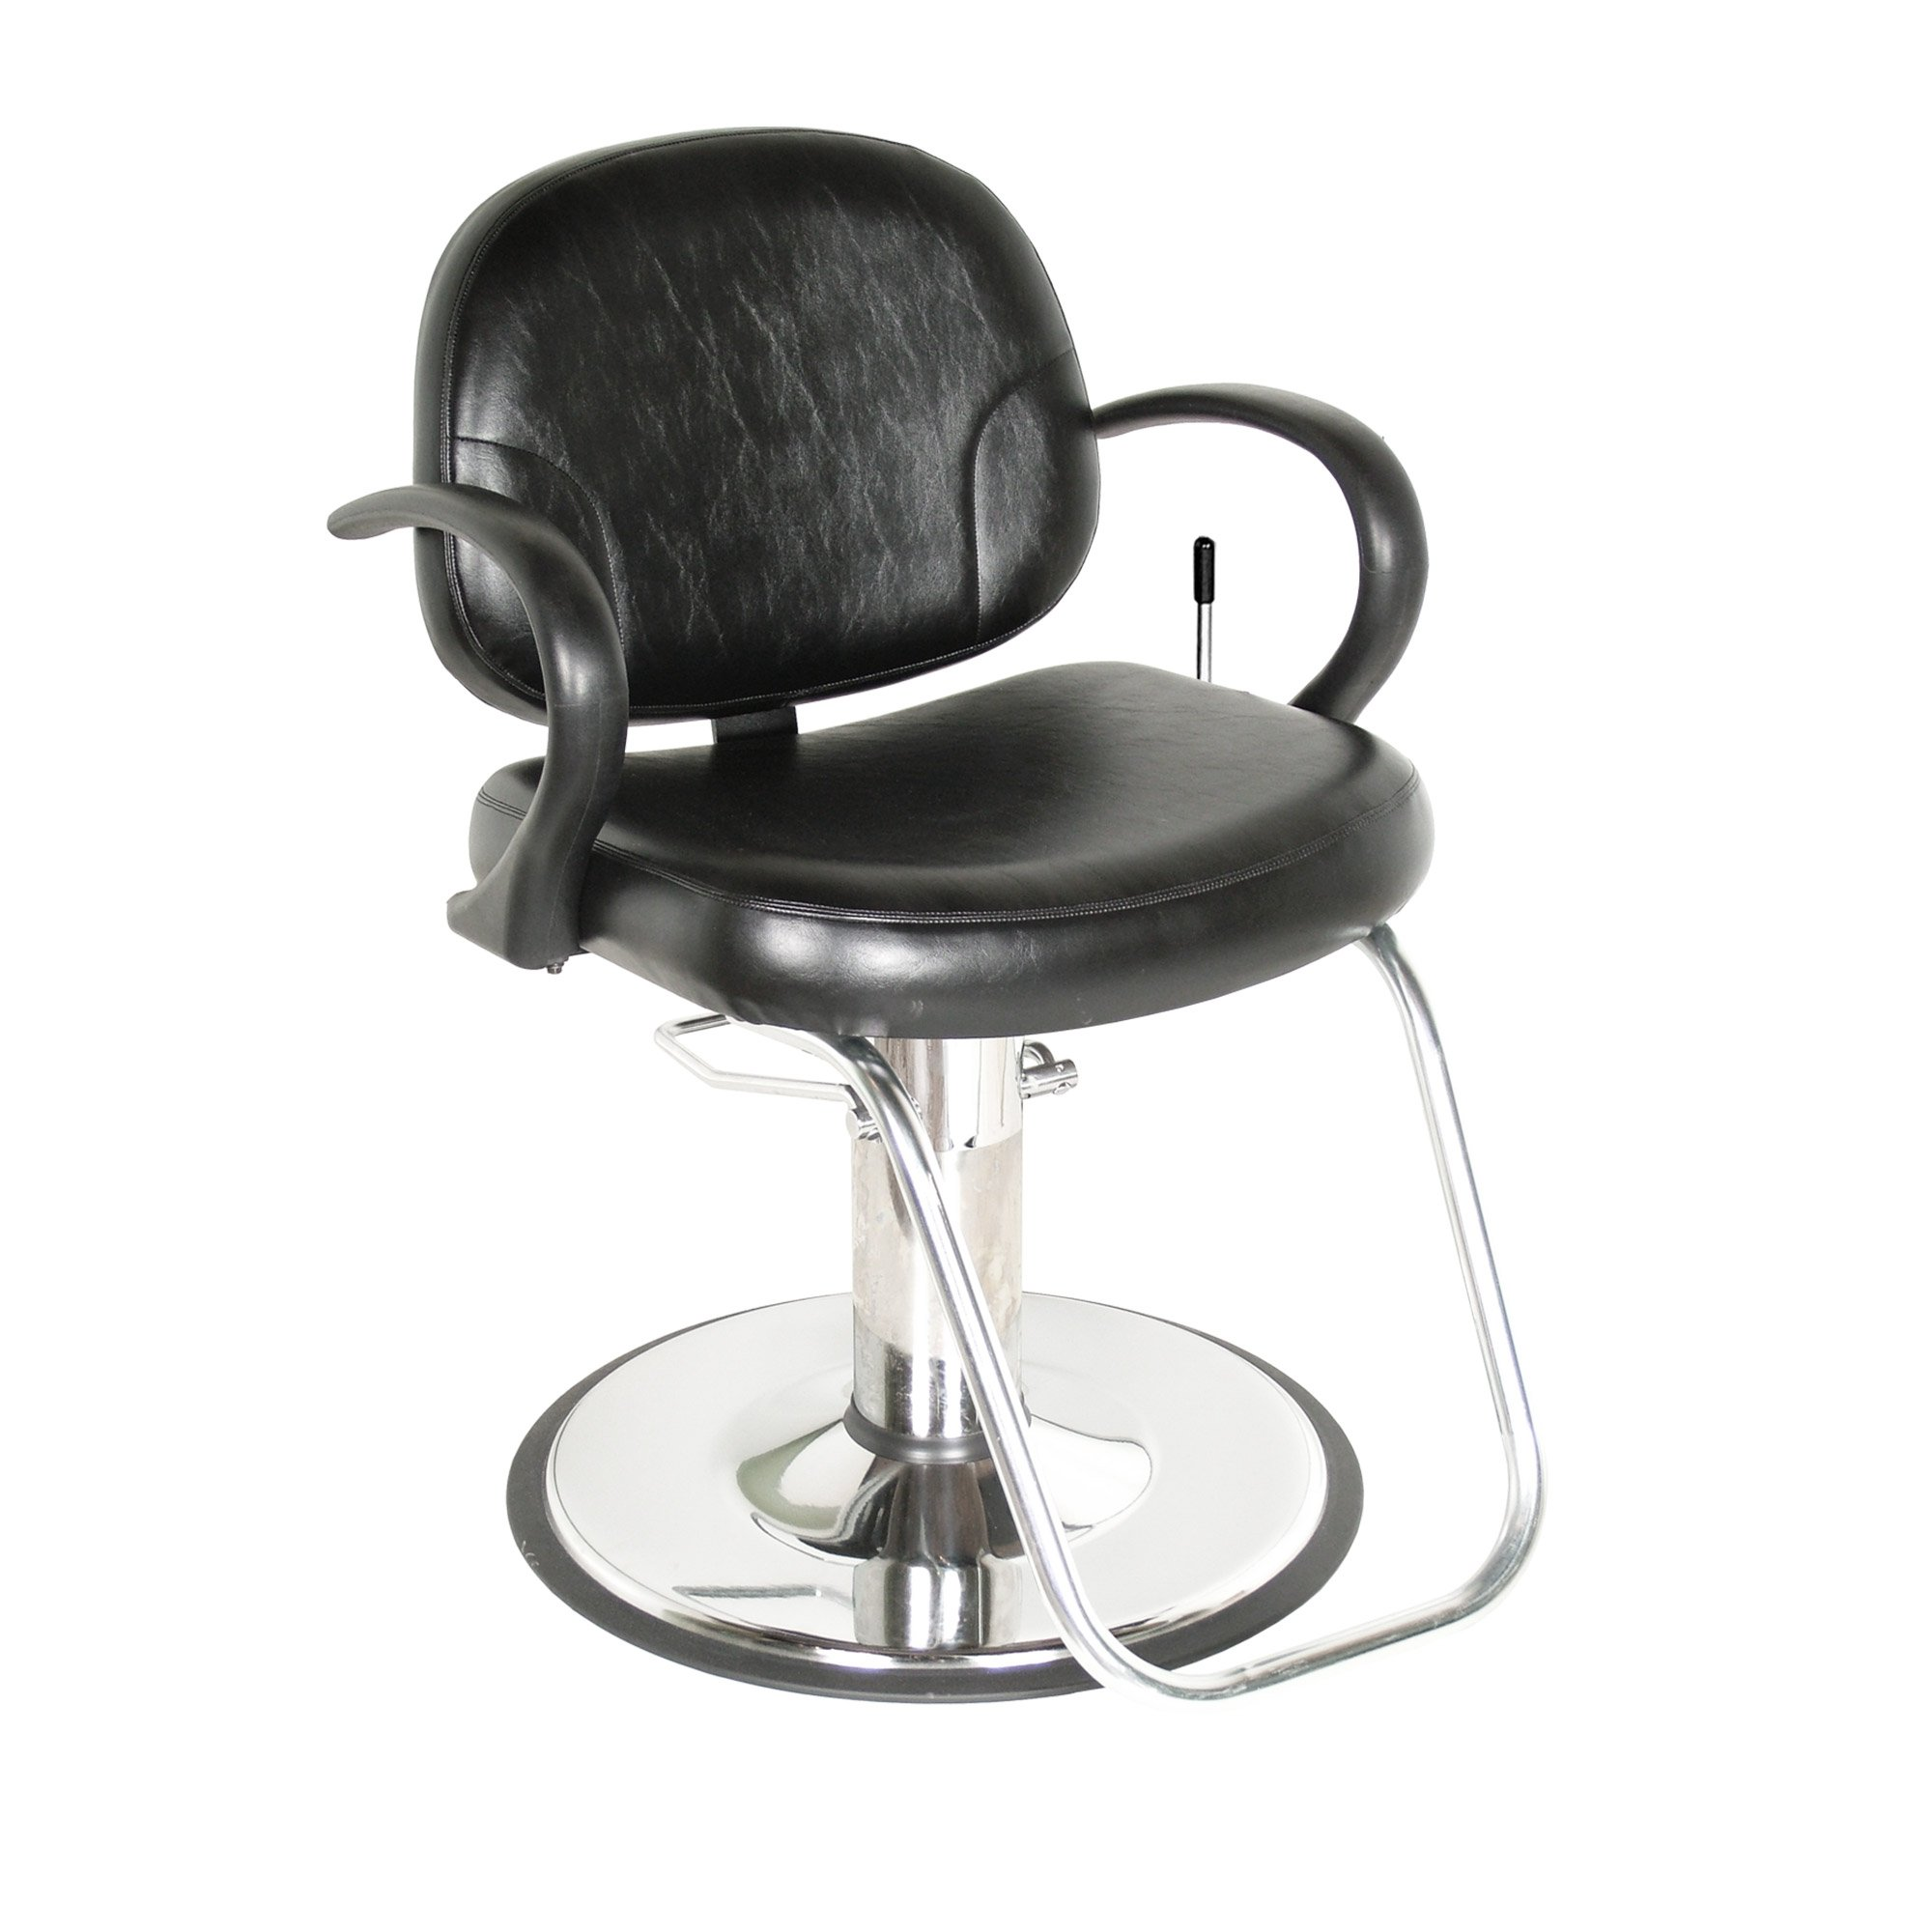 8610 Corivas All Purpose Chair with Standard Base